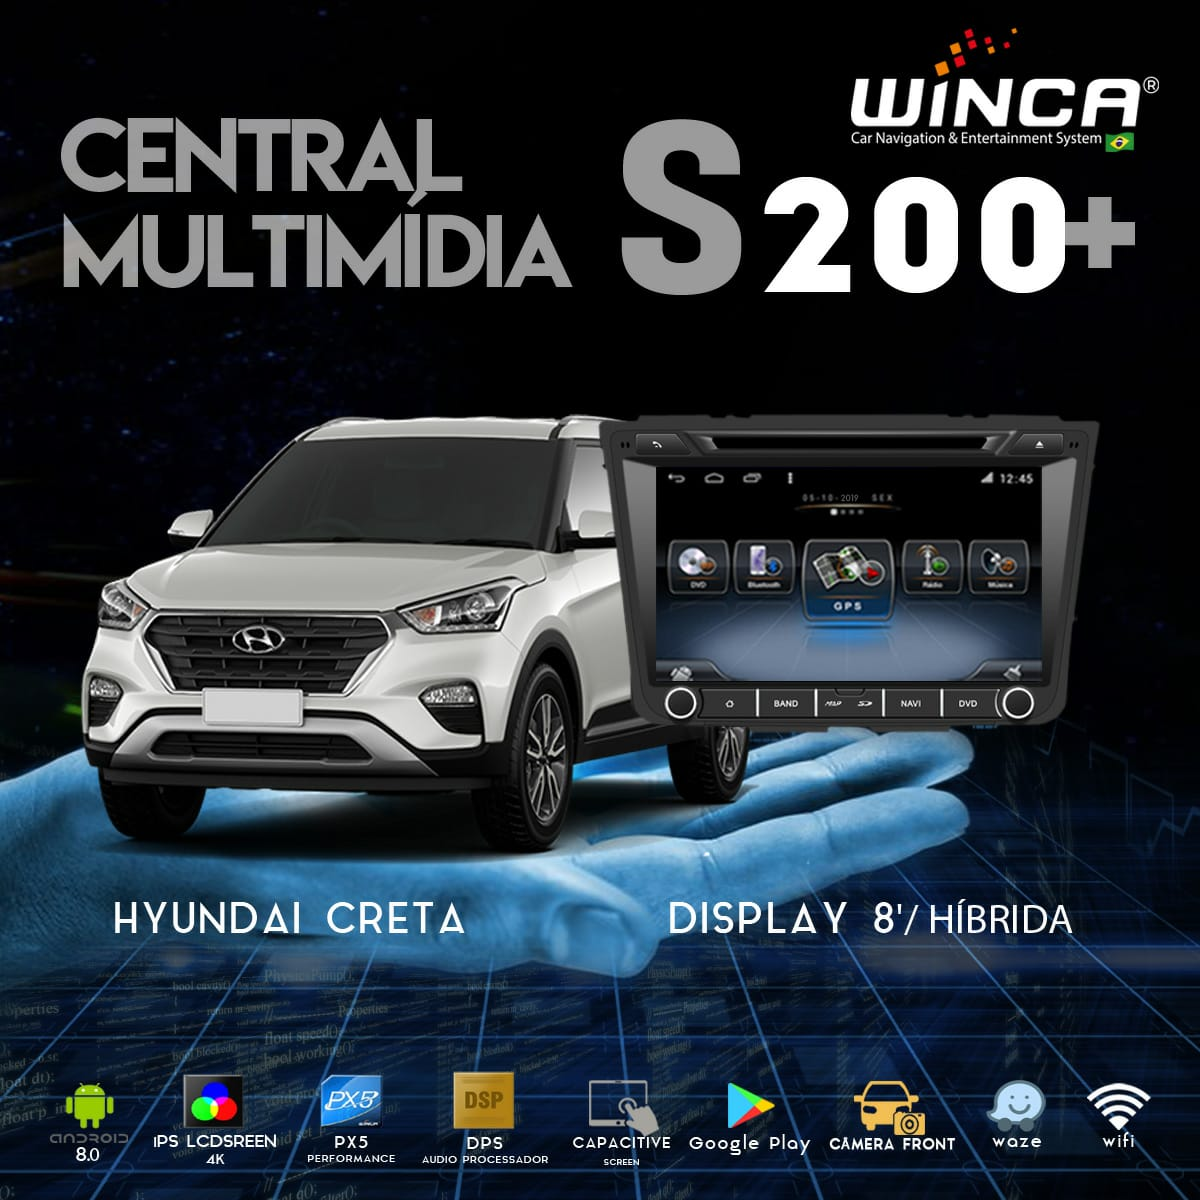 Central Multimidia Hyundai Creta Winca S200+  Tela 8 pol - Waze Spotify - 2 cameras Ré + Frontal - TV  Digital via APP - GPS Integrado -  Bluetooth - 2 entradas USB - Android 9.0